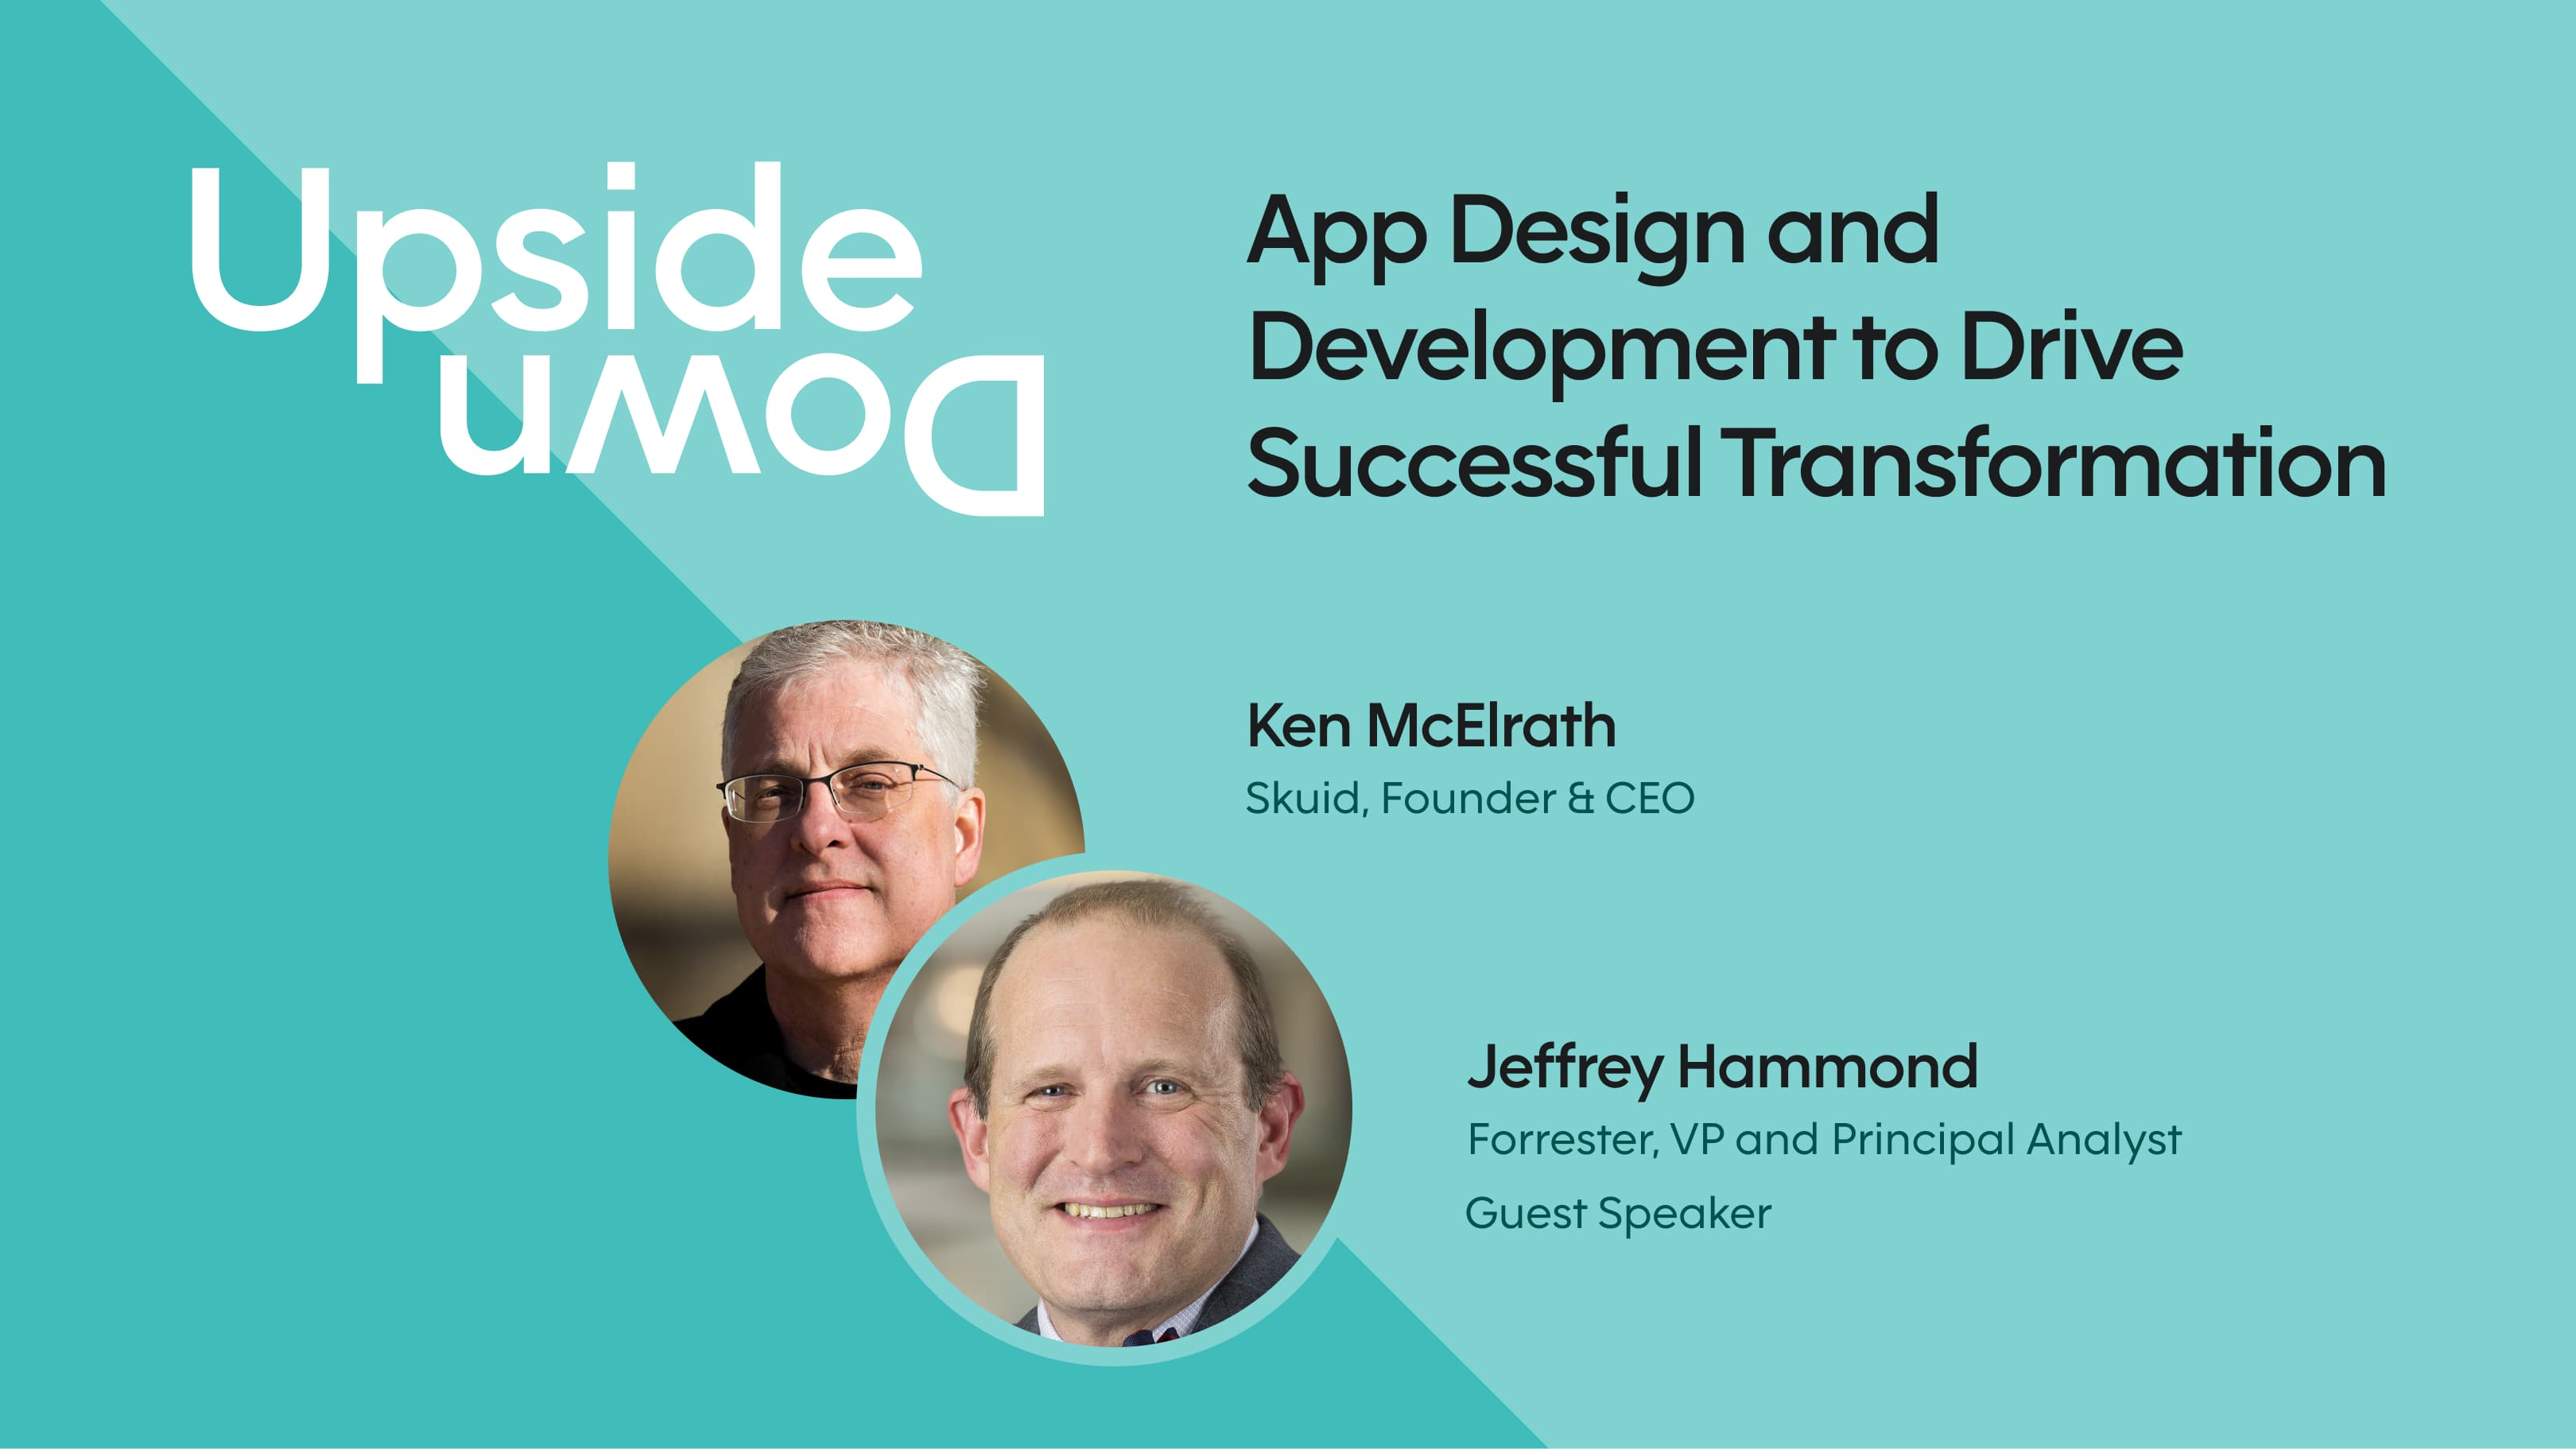 Upside Down App Design and Development to Drive Successful Transformation